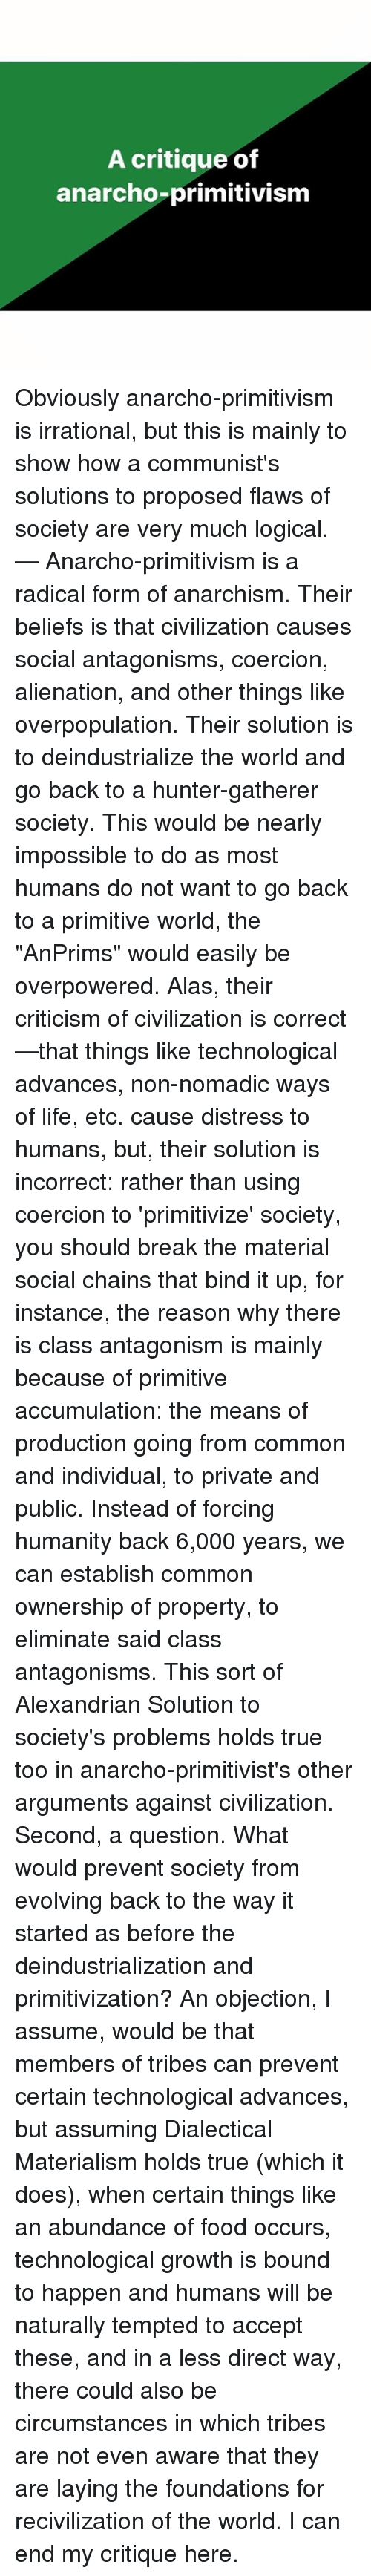 """Anarcho Primitivism: A critique of  anarcho-primitivism Obviously anarcho-primitivism is irrational, but this is mainly to show how a communist's solutions to proposed flaws of society are very much logical. — Anarcho-primitivism is a radical form of anarchism. Their beliefs is that civilization causes social antagonisms, coercion, alienation, and other things like overpopulation. Their solution is to deindustrialize the world and go back to a hunter-gatherer society. This would be nearly impossible to do as most humans do not want to go back to a primitive world, the """"AnPrims"""" would easily be overpowered. Alas, their criticism of civilization is correct—that things like technological advances, non-nomadic ways of life, etc. cause distress to humans, but, their solution is incorrect: rather than using coercion to 'primitivize' society, you should break the material social chains that bind it up, for instance, the reason why there is class antagonism is mainly because of primitive accumulation: the means of production going from common and individual, to private and public. Instead of forcing humanity back 6,000 years, we can establish common ownership of property, to eliminate said class antagonisms. This sort of Alexandrian Solution to society's problems holds true too in anarcho-primitivist's other arguments against civilization. Second, a question. What would prevent society from evolving back to the way it started as before the deindustrialization and primitivization? An objection, I assume, would be that members of tribes can prevent certain technological advances, but assuming Dialectical Materialism holds true (which it does), when certain things like an abundance of food occurs, technological growth is bound to happen and humans will be naturally tempted to accept these, and in a less direct way, there could also be circumstances in which tribes are not even aware that they are laying the foundations for recivilization of the world. I can end my critique her"""